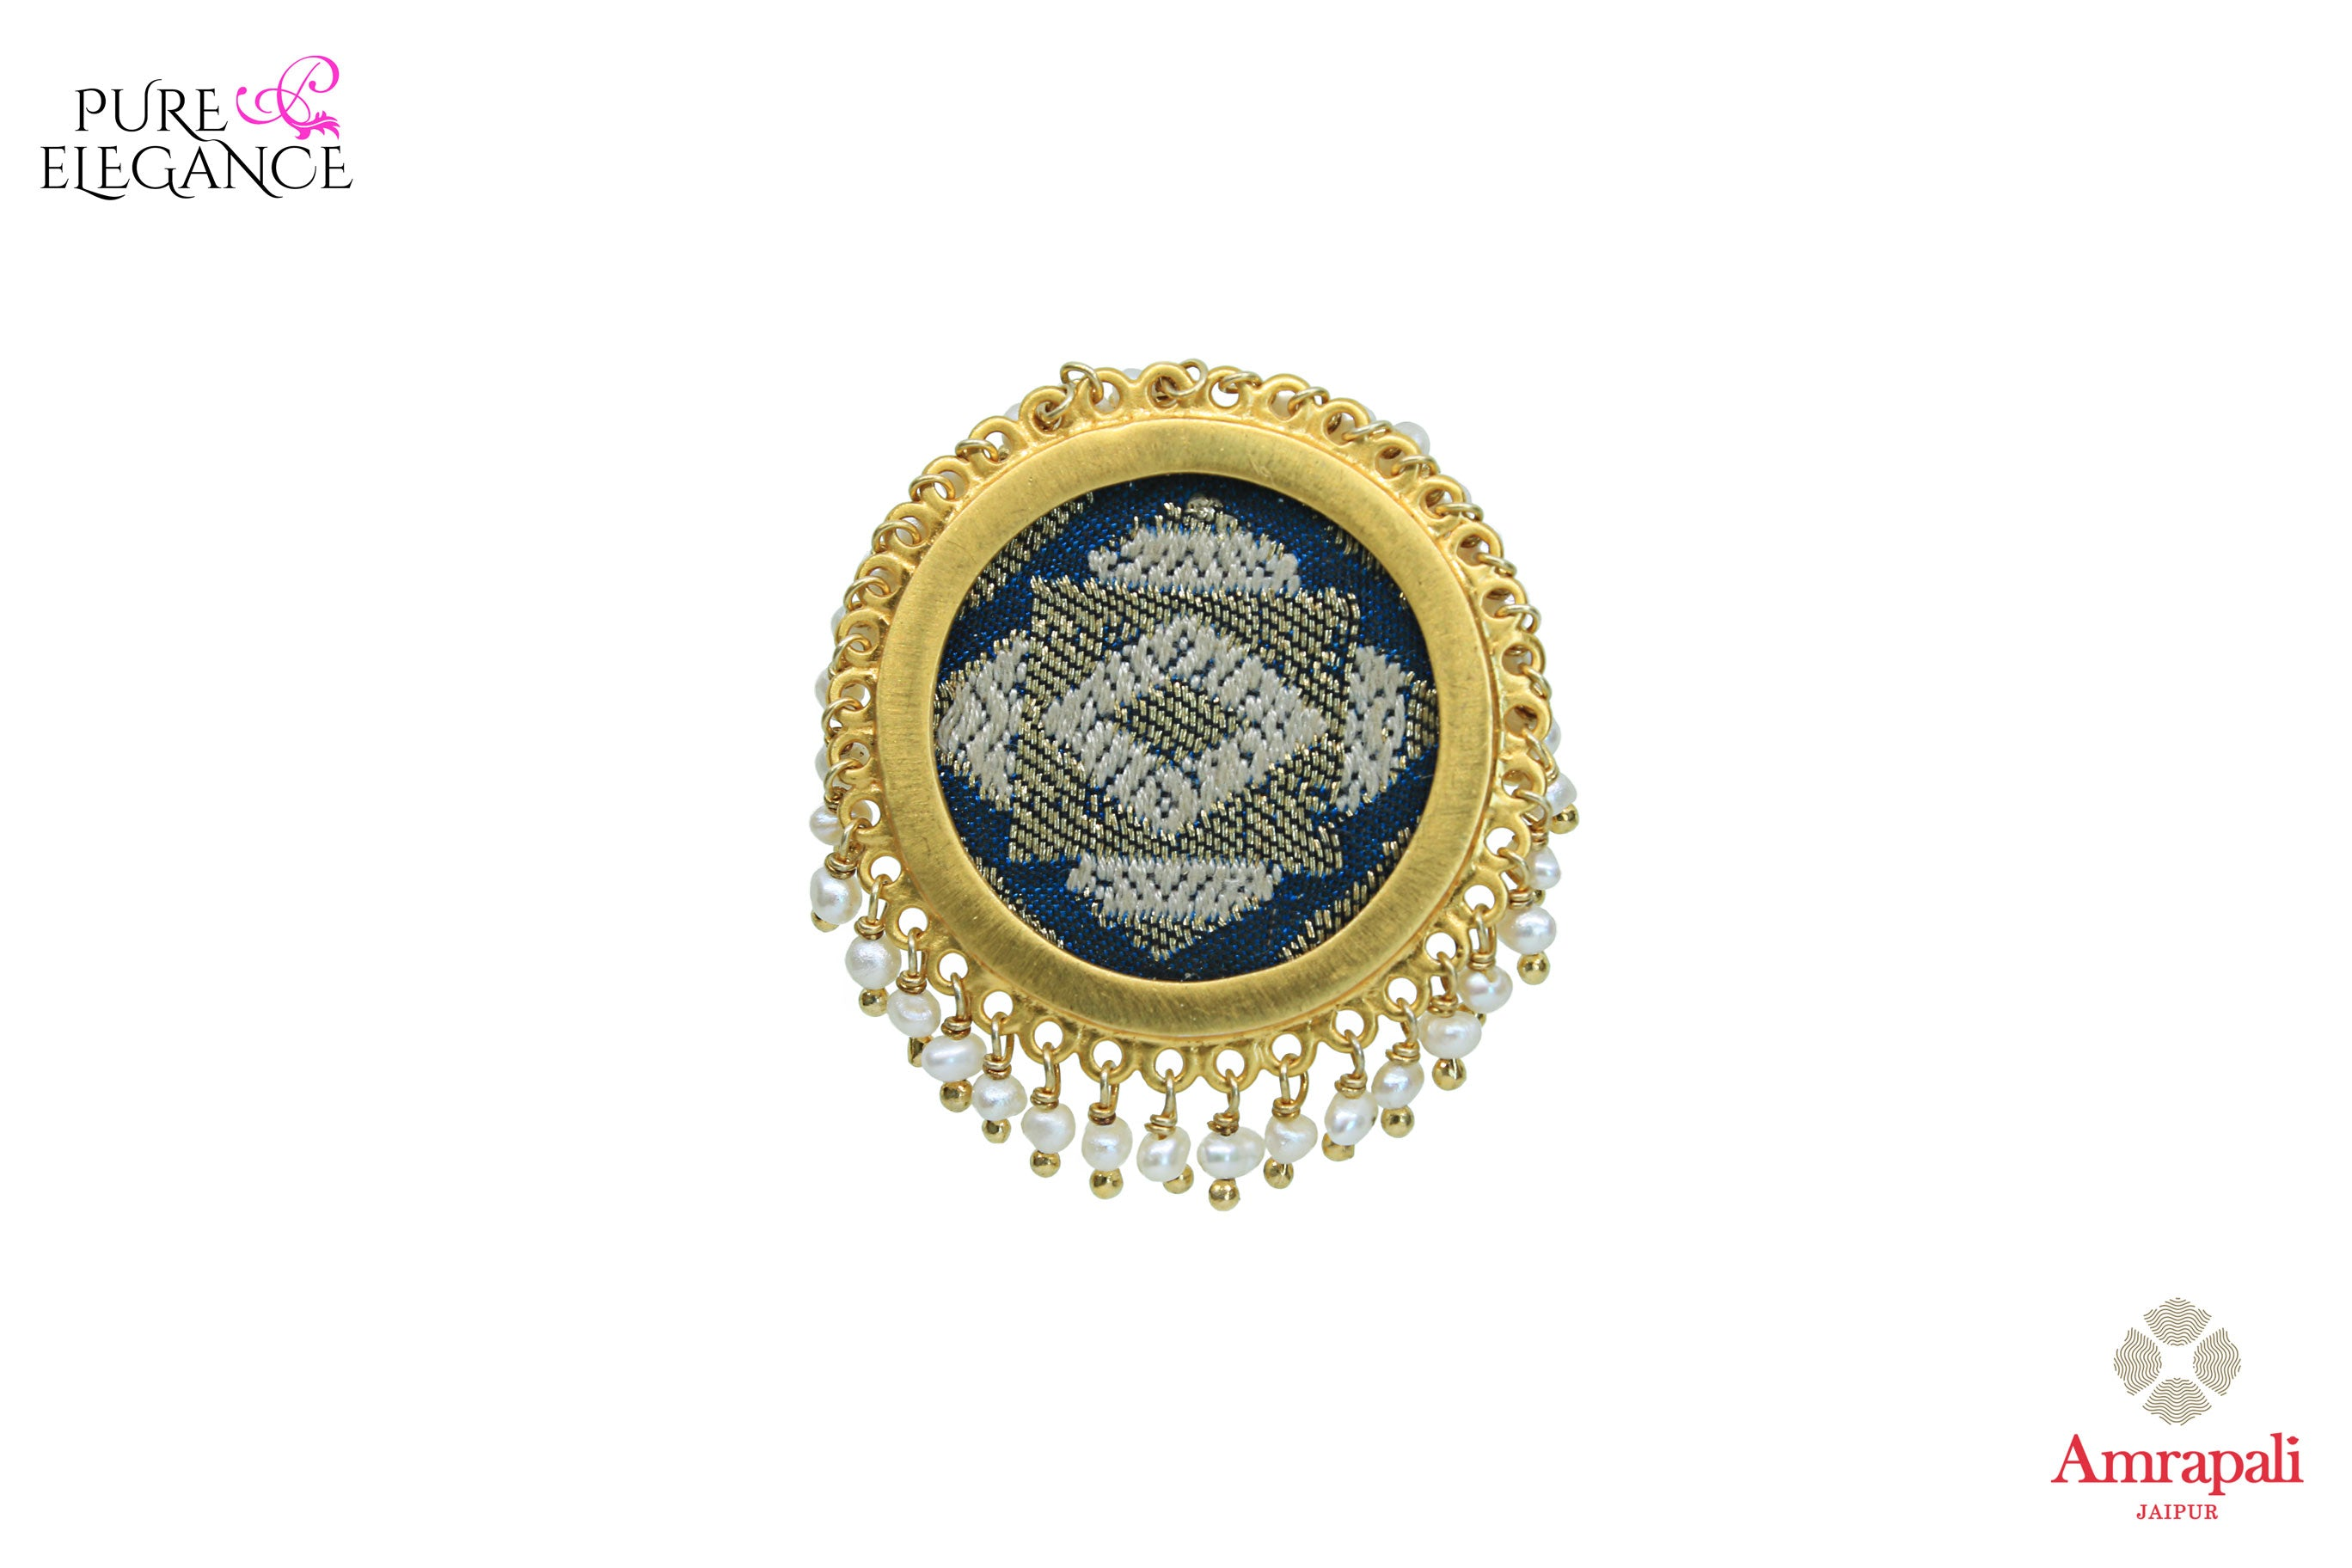 Buy Amrapali silver gold plated ring online in USA with hanging pearls. An exquisite collection of beautiful Indian silver gold plated jewelry is waiting at Pure Elegance exclusive Indian fashion store in USA or shop online at the comfort of your home.-front view